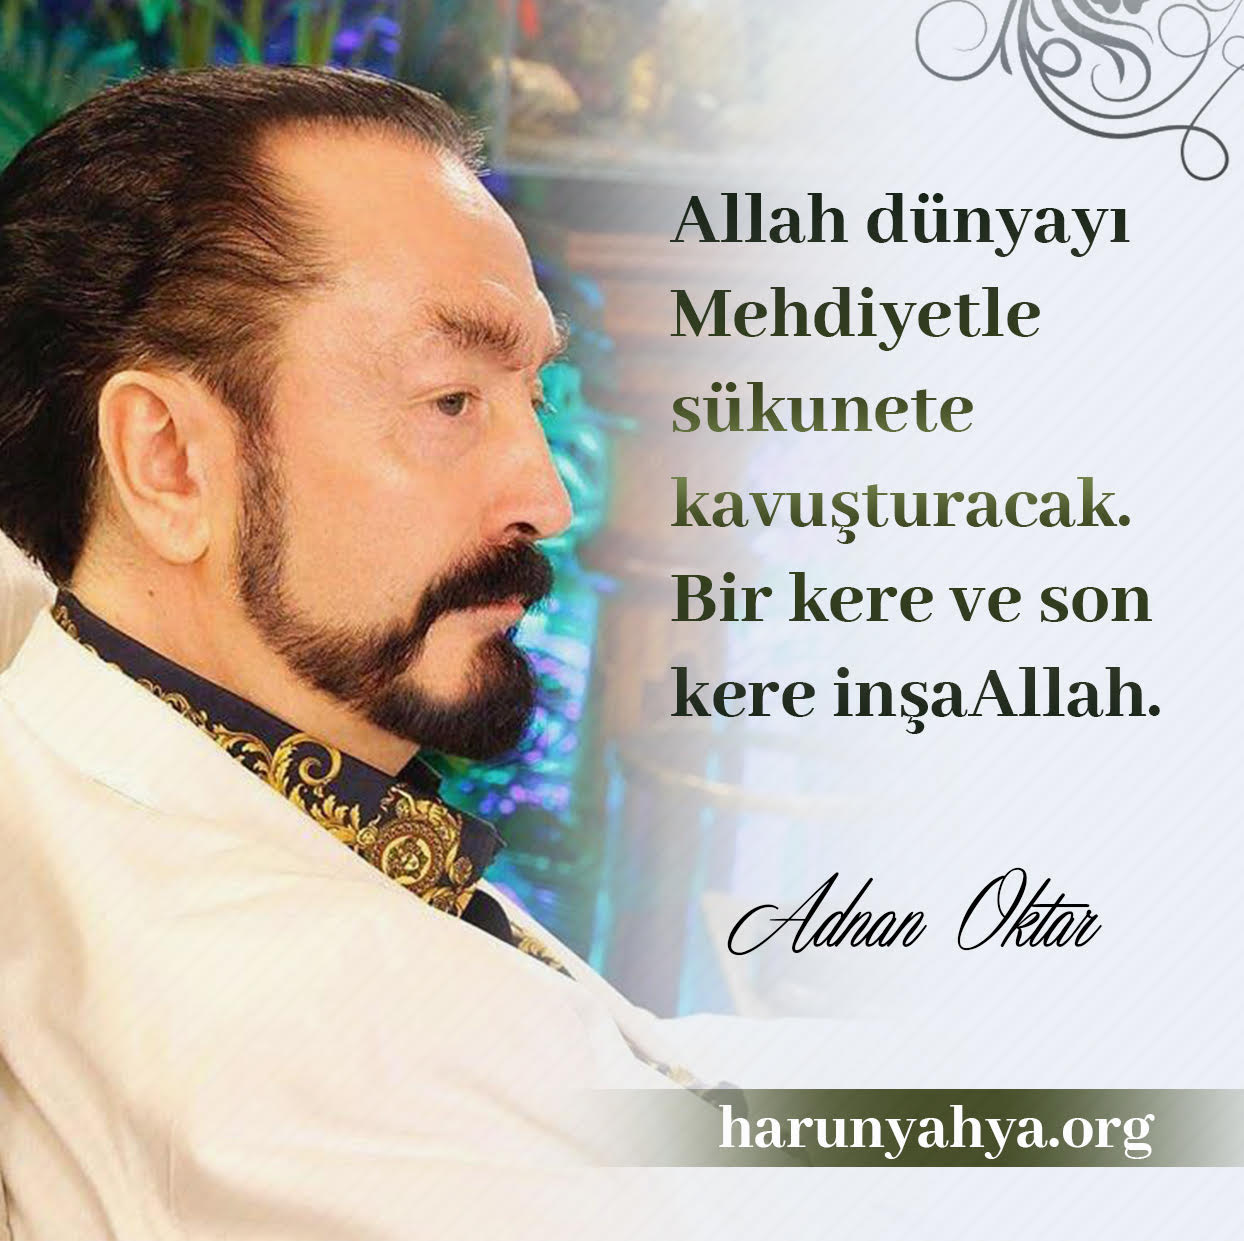 """<table style=""""width: 100%;""""><tr><td style=""""vertical-align: middle;"""">Allah dünyayı Mehdiyetle sükunete kavuşturacak. Bir kere ve son kere inşaAllah. </td><td style=""""max-width: 70px;vertical-align: middle;""""> <a href=""""/downloadquote.php?filename=1527238164406.jpg""""><img class=""""hoversaturate"""" height=""""20px"""" src=""""/assets/images/download-iconu.png"""" style=""""width: 48px; height: 48px;"""" title=""""Resmi İndir""""/></a></td></tr></table>"""